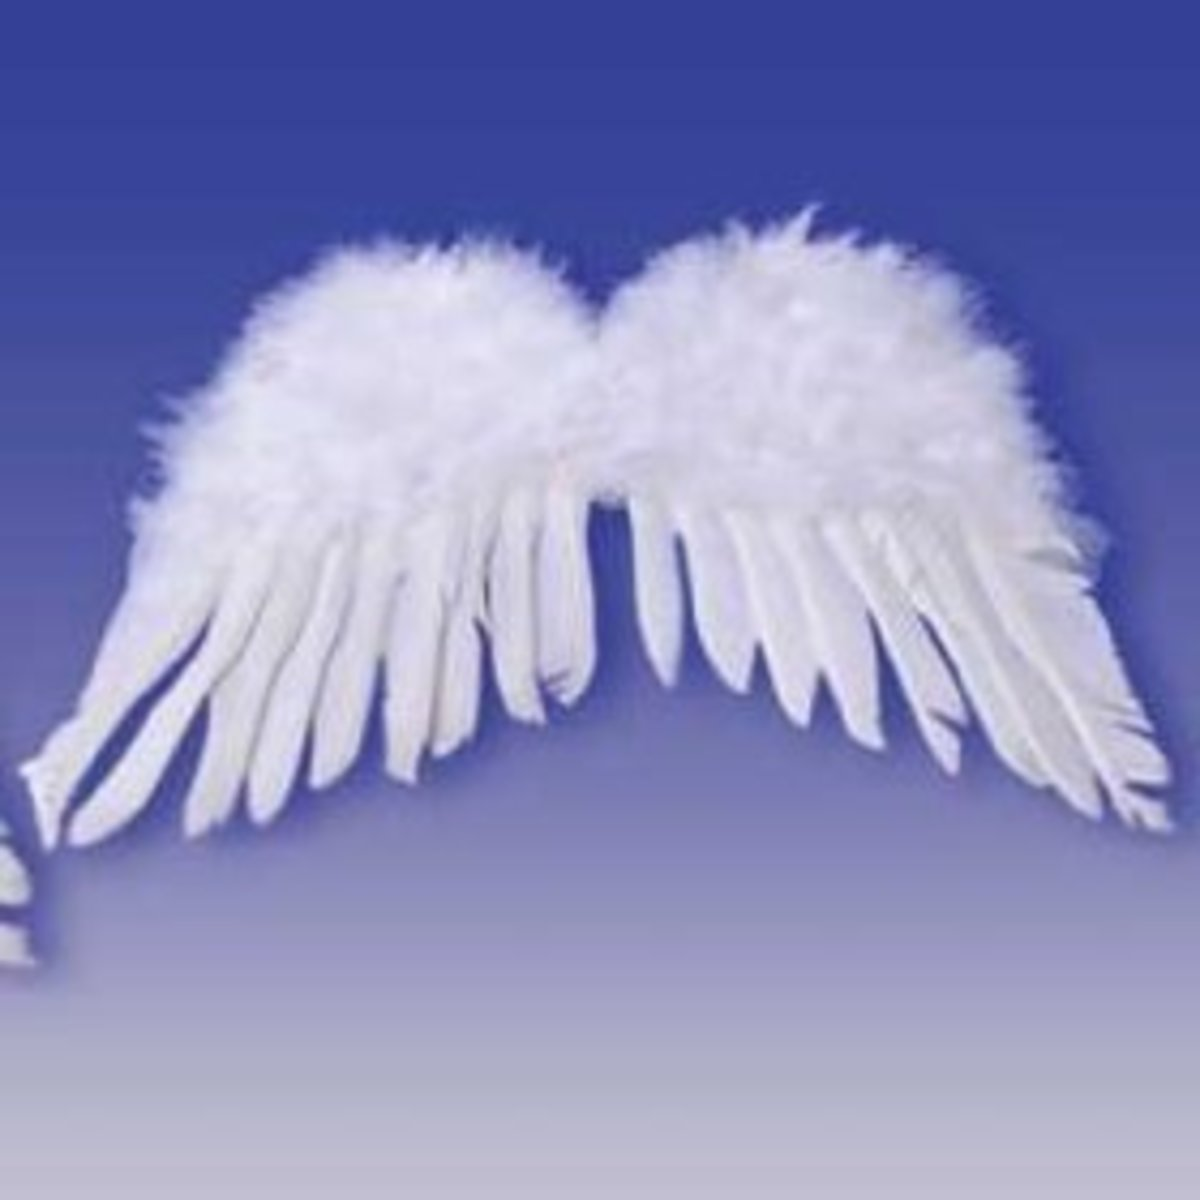 Angel wings can transform a tutu wearer into an angel, a swan, or even a flying pig!